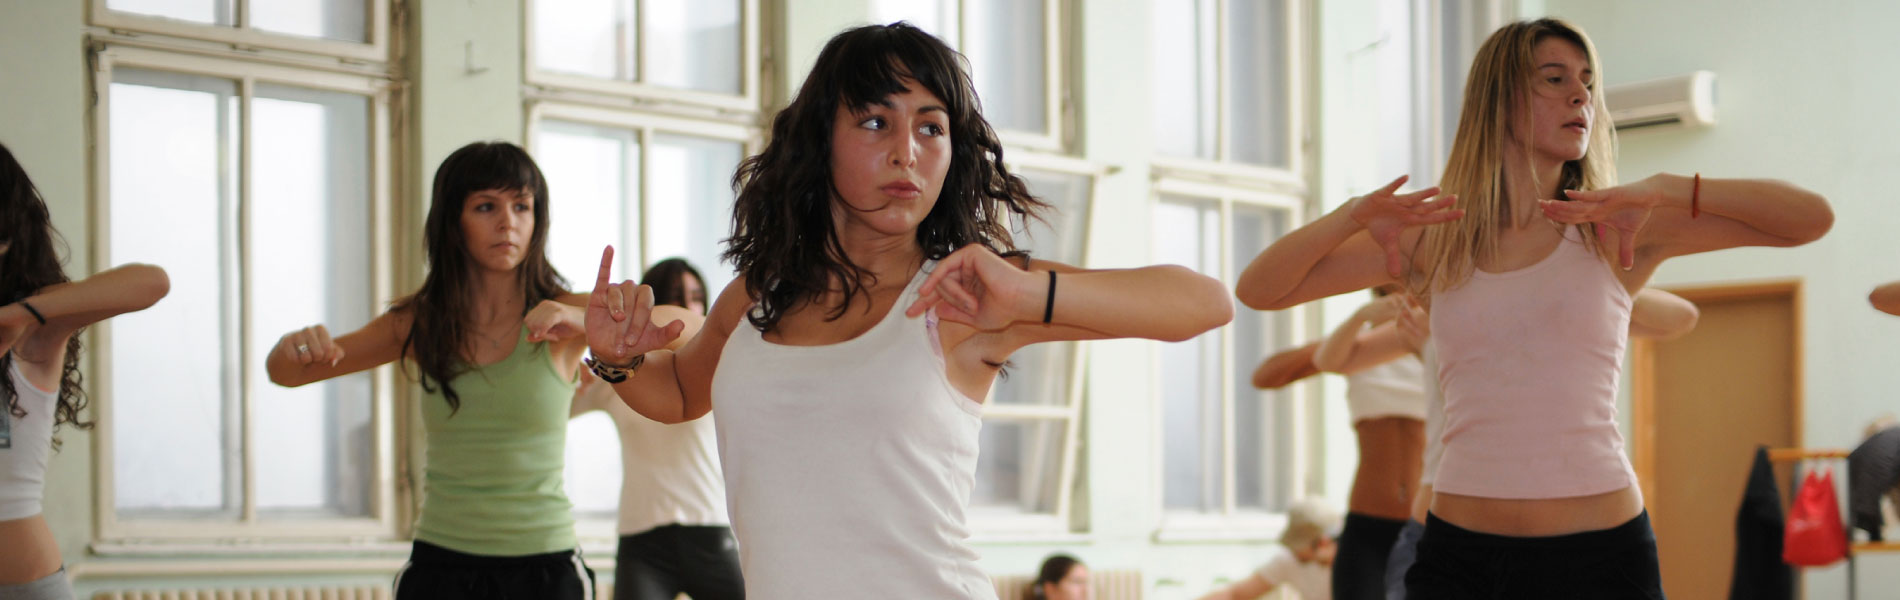 Using_Dance_Competition_to_Grow_Your_Studio_1900x600.jpg